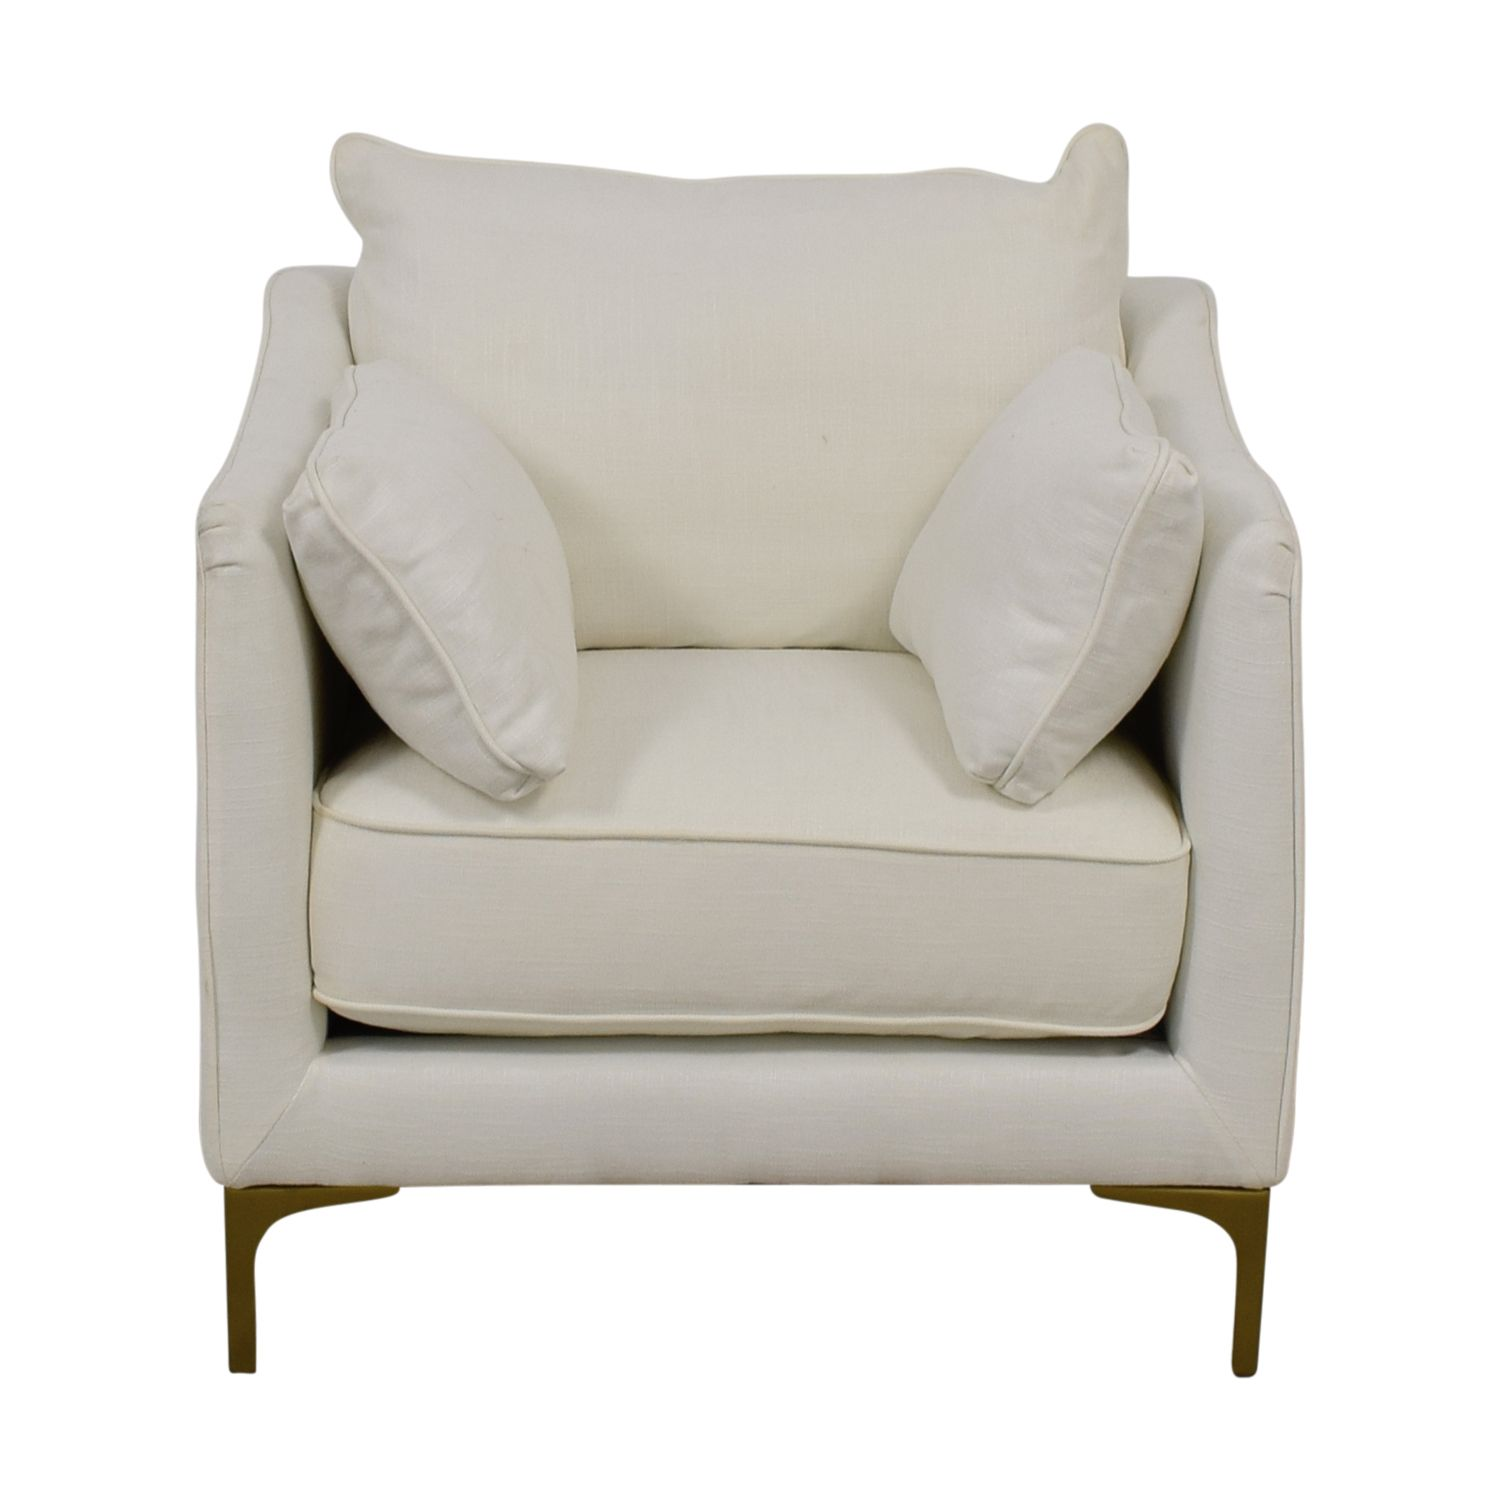 Caitlin Pee White Accent Chair